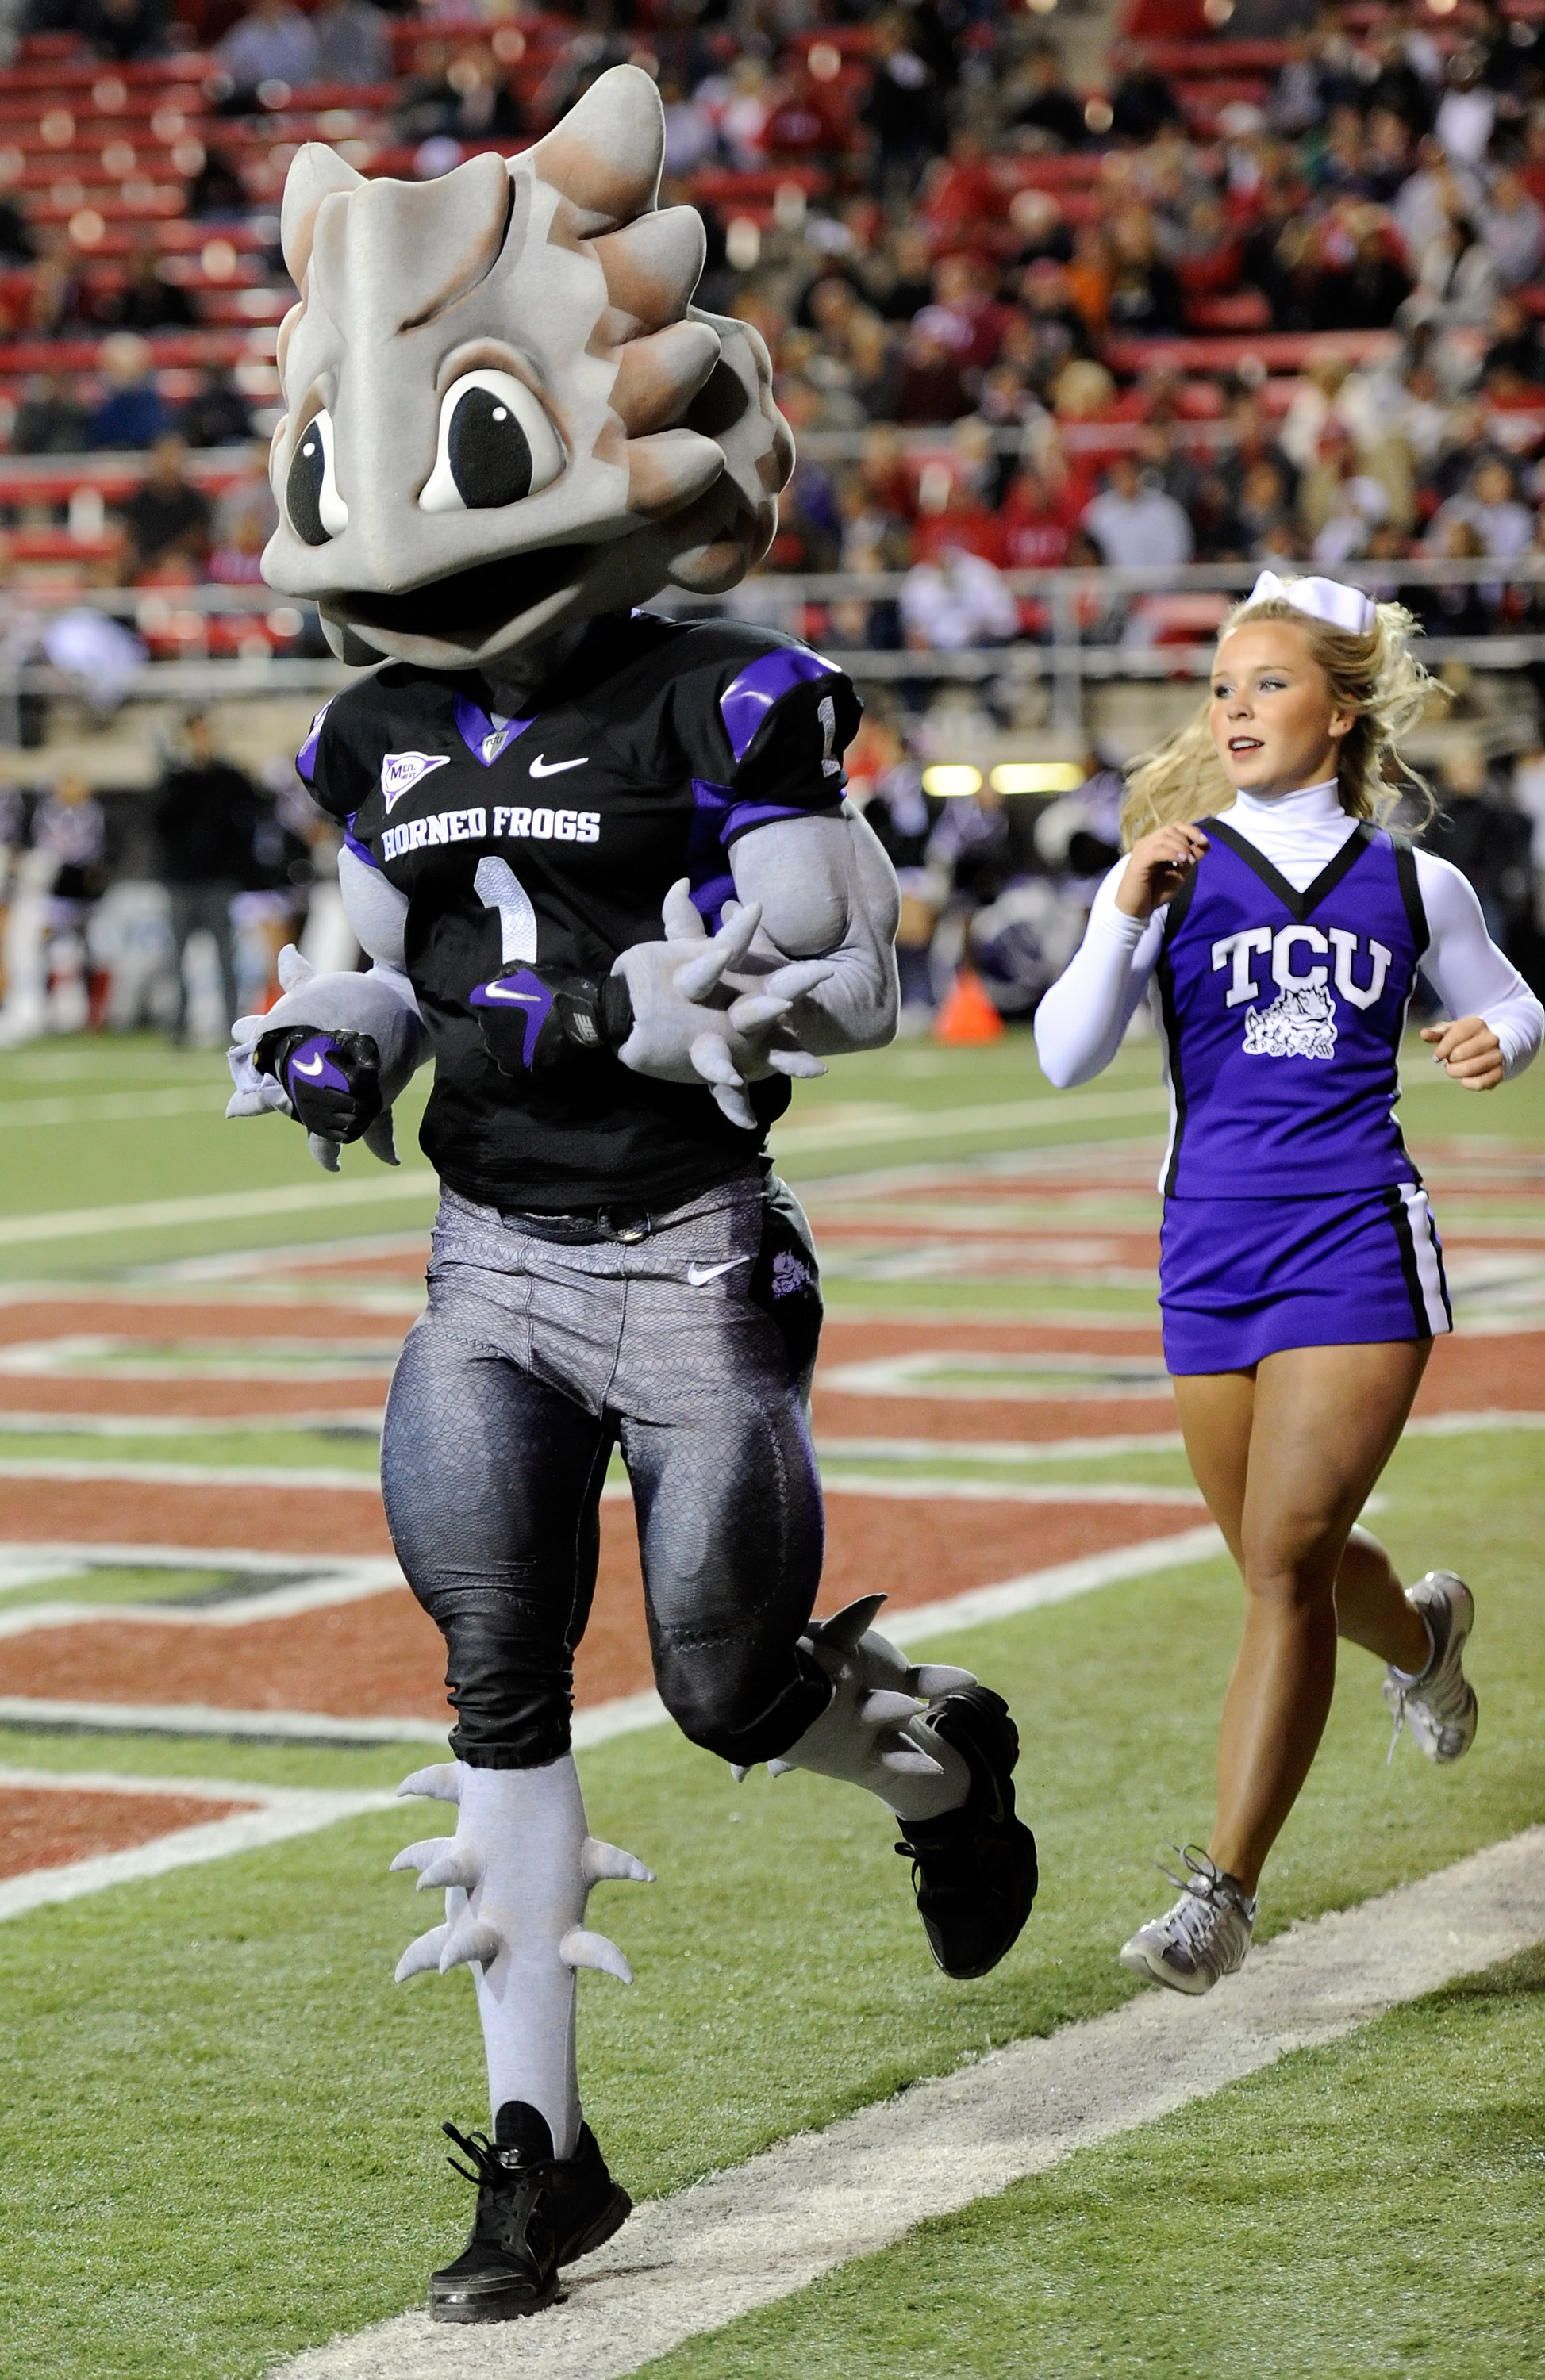 LAS VEGAS - OCTOBER 30:  Texas Christian University Horned Frogs mascot 'Superfrog' and a cheerleader run along the end zone after the team scored against the UNLV Rebels at Sam Boyd Stadium October 30, 2010 in Las Vegas, Nevada. TCU won 48-6.  (Photo by